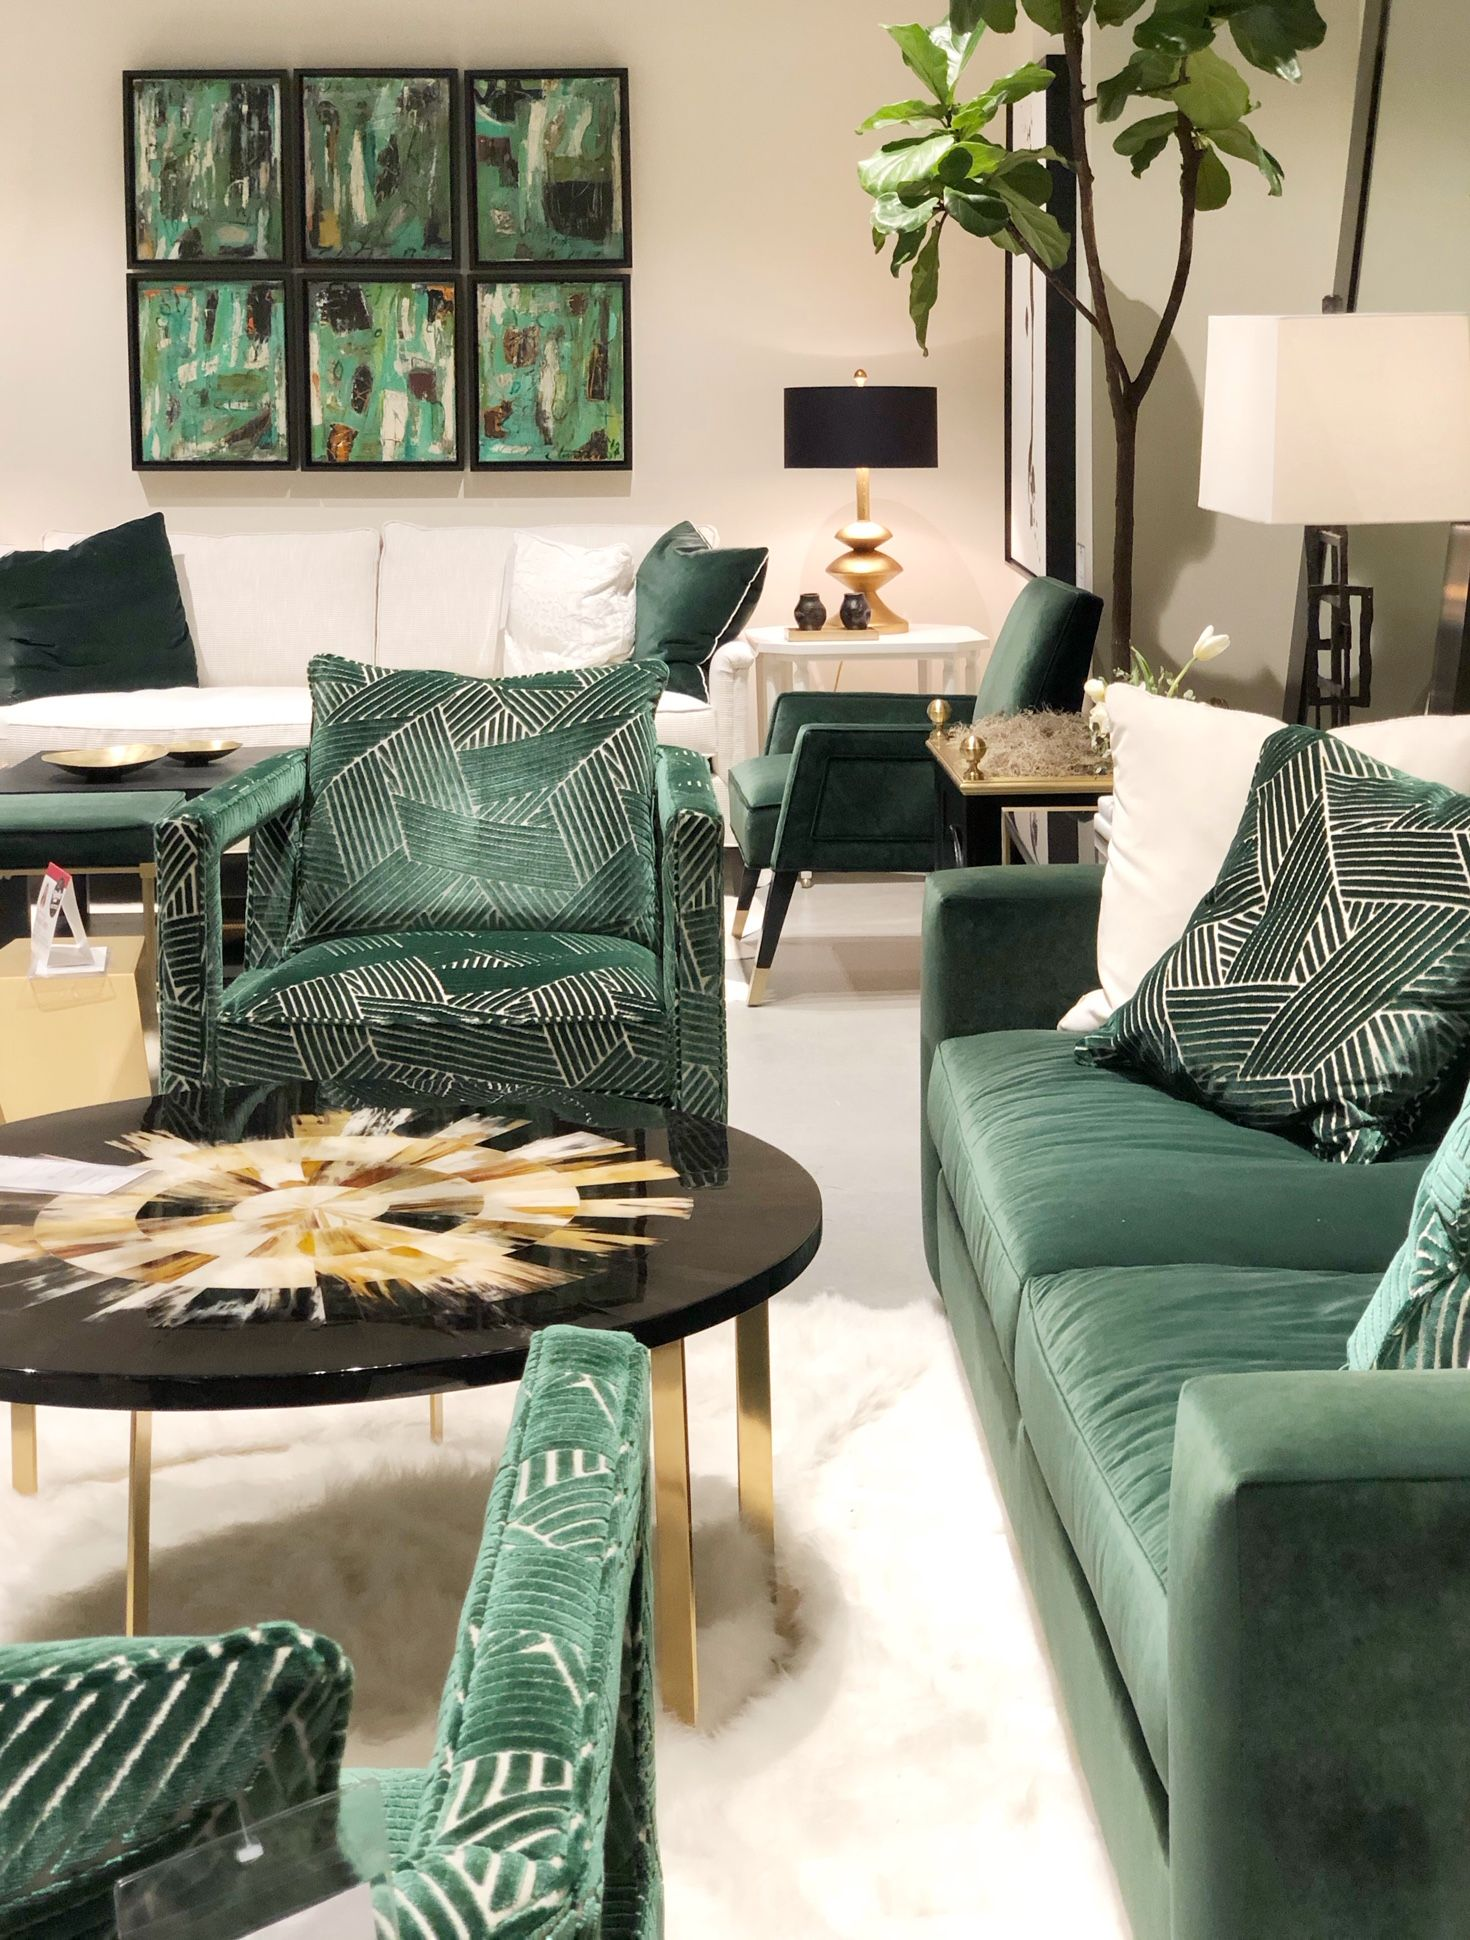 Color And Design Trends From Spring 2019 High Point Market Part One Interior Design Trends Interior Interior Design